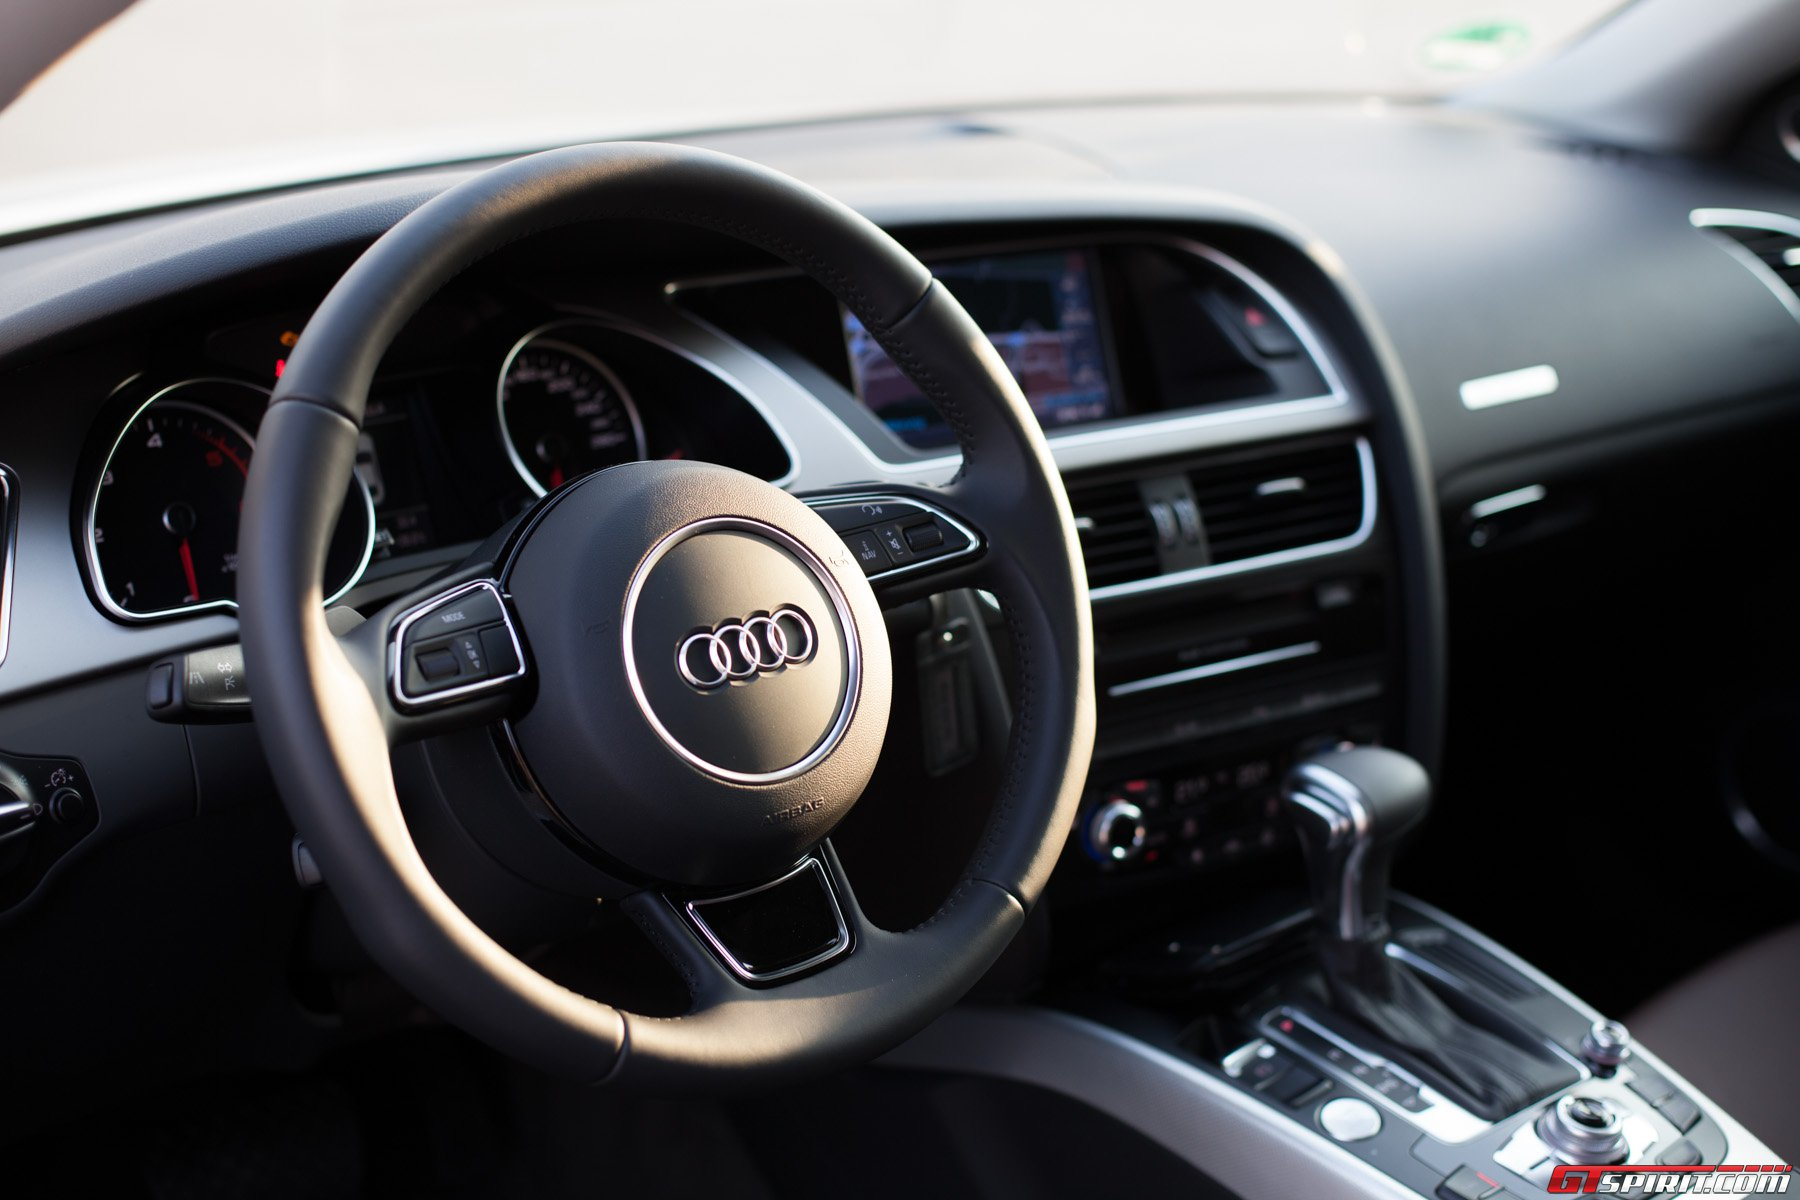 2013 audi a5 3.0 tdi clean diesel quattro review